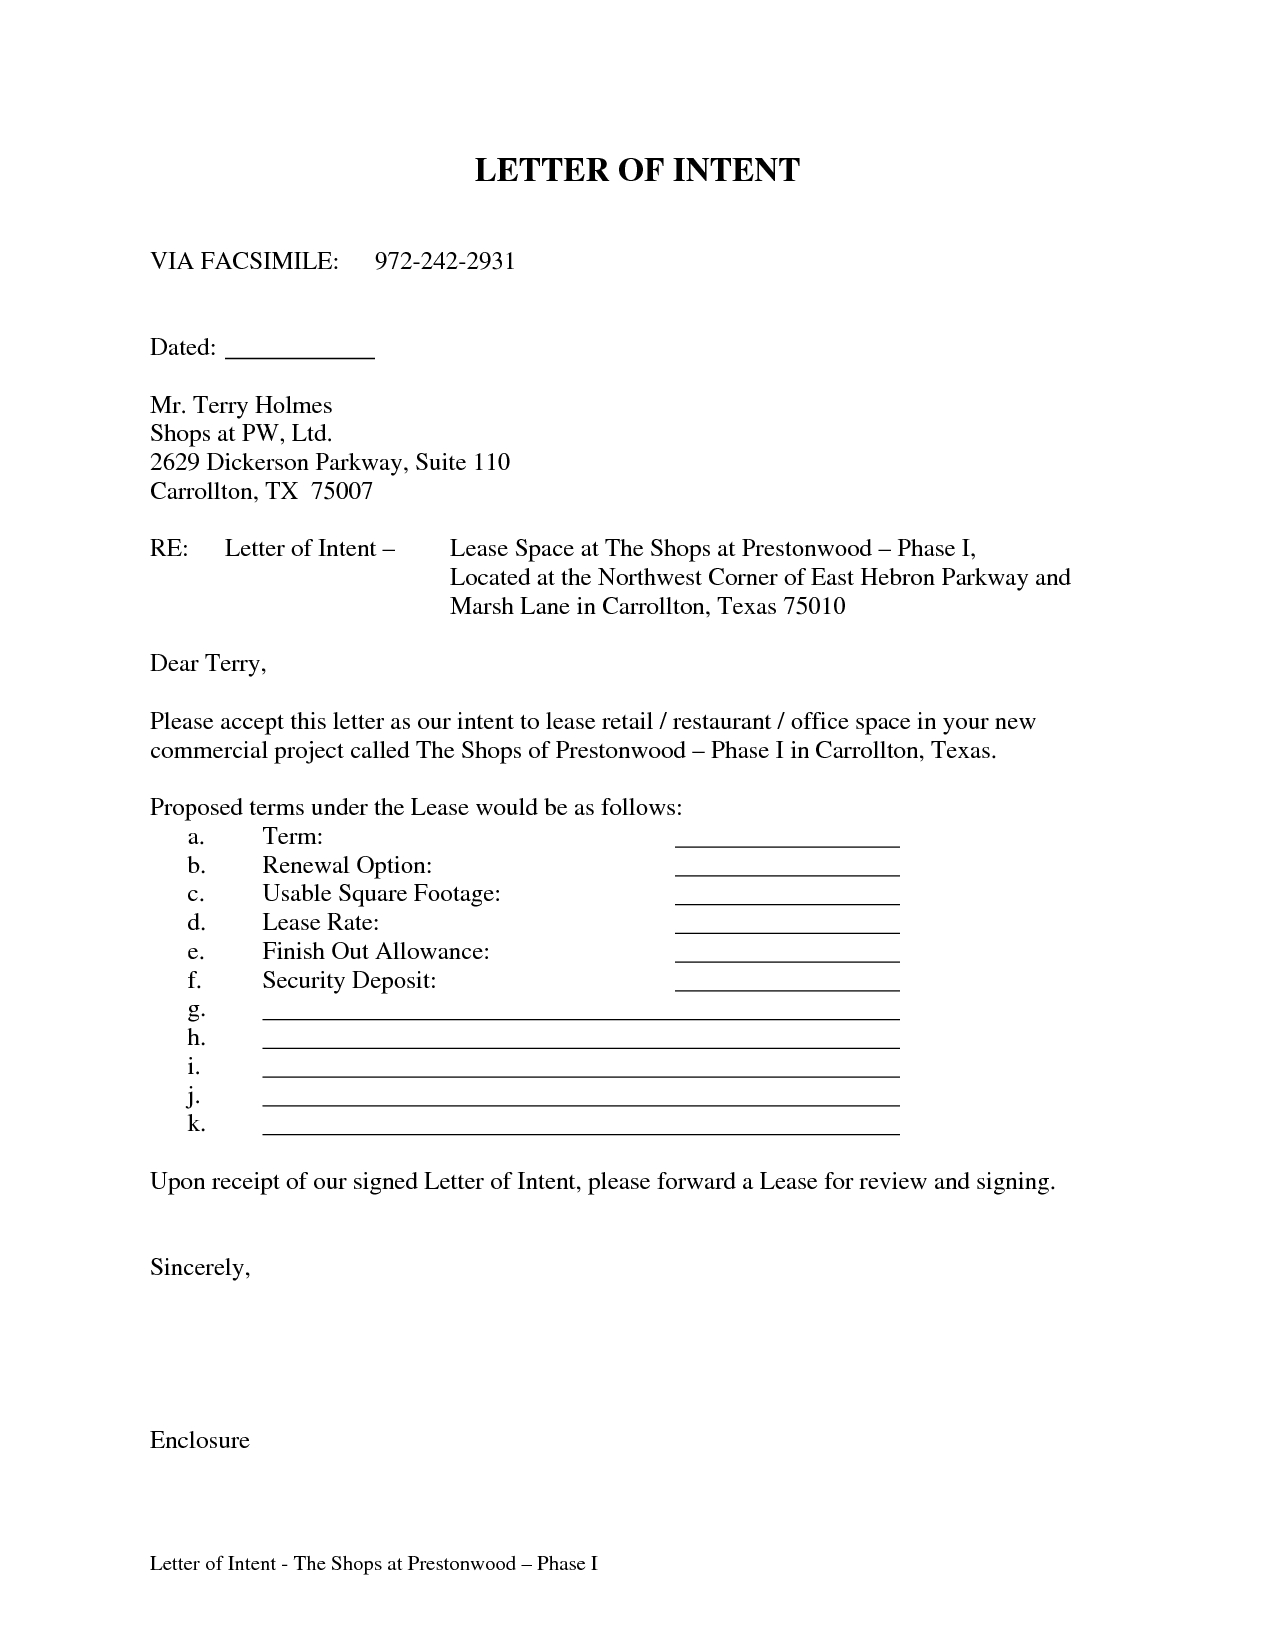 Commercial Real Estate Lease Letter Of Intent Template - Letter Intent for Mercial Lease Sample Property to Real Estate